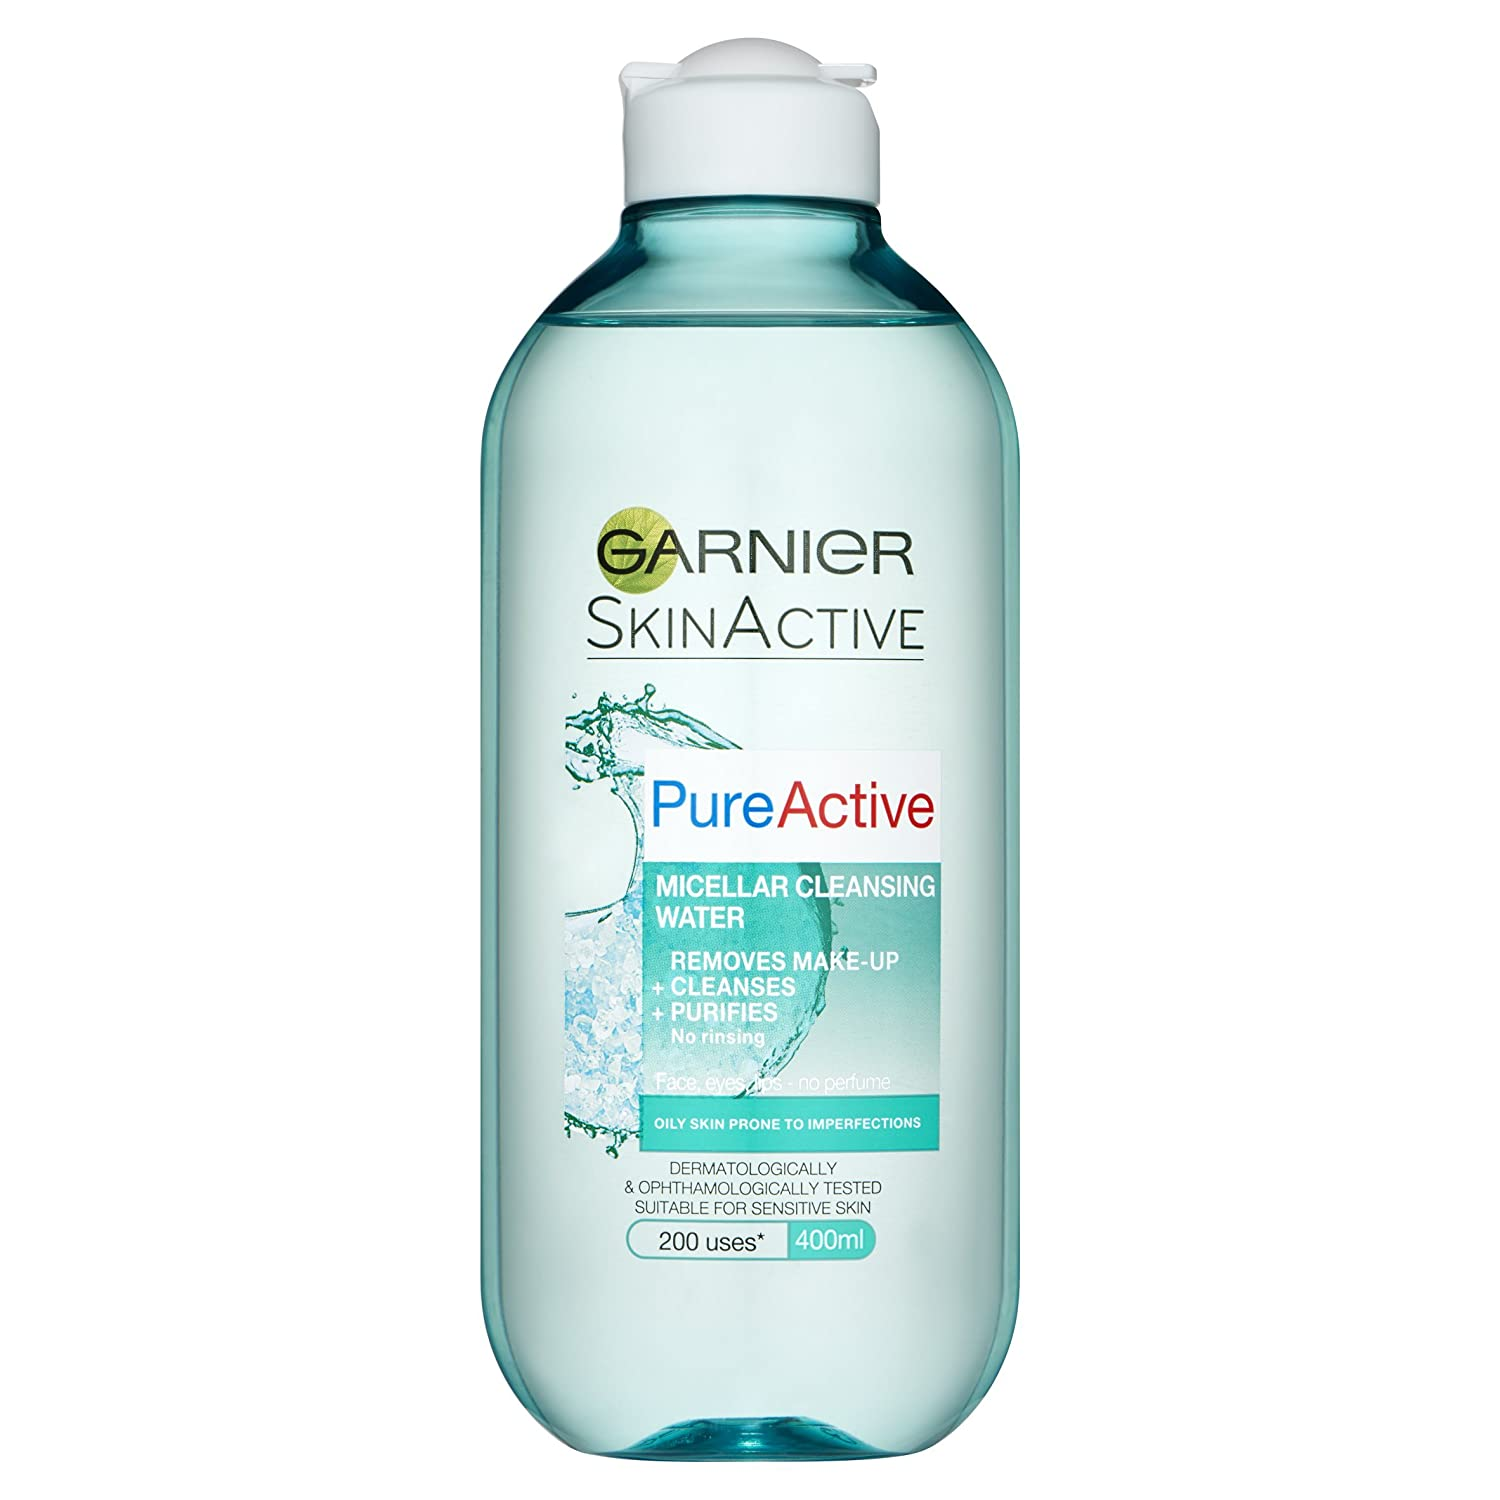 Pure Active Micellar Water Oily Skin 400ml Beauty Garnier Acne Oil Clearing 100ml